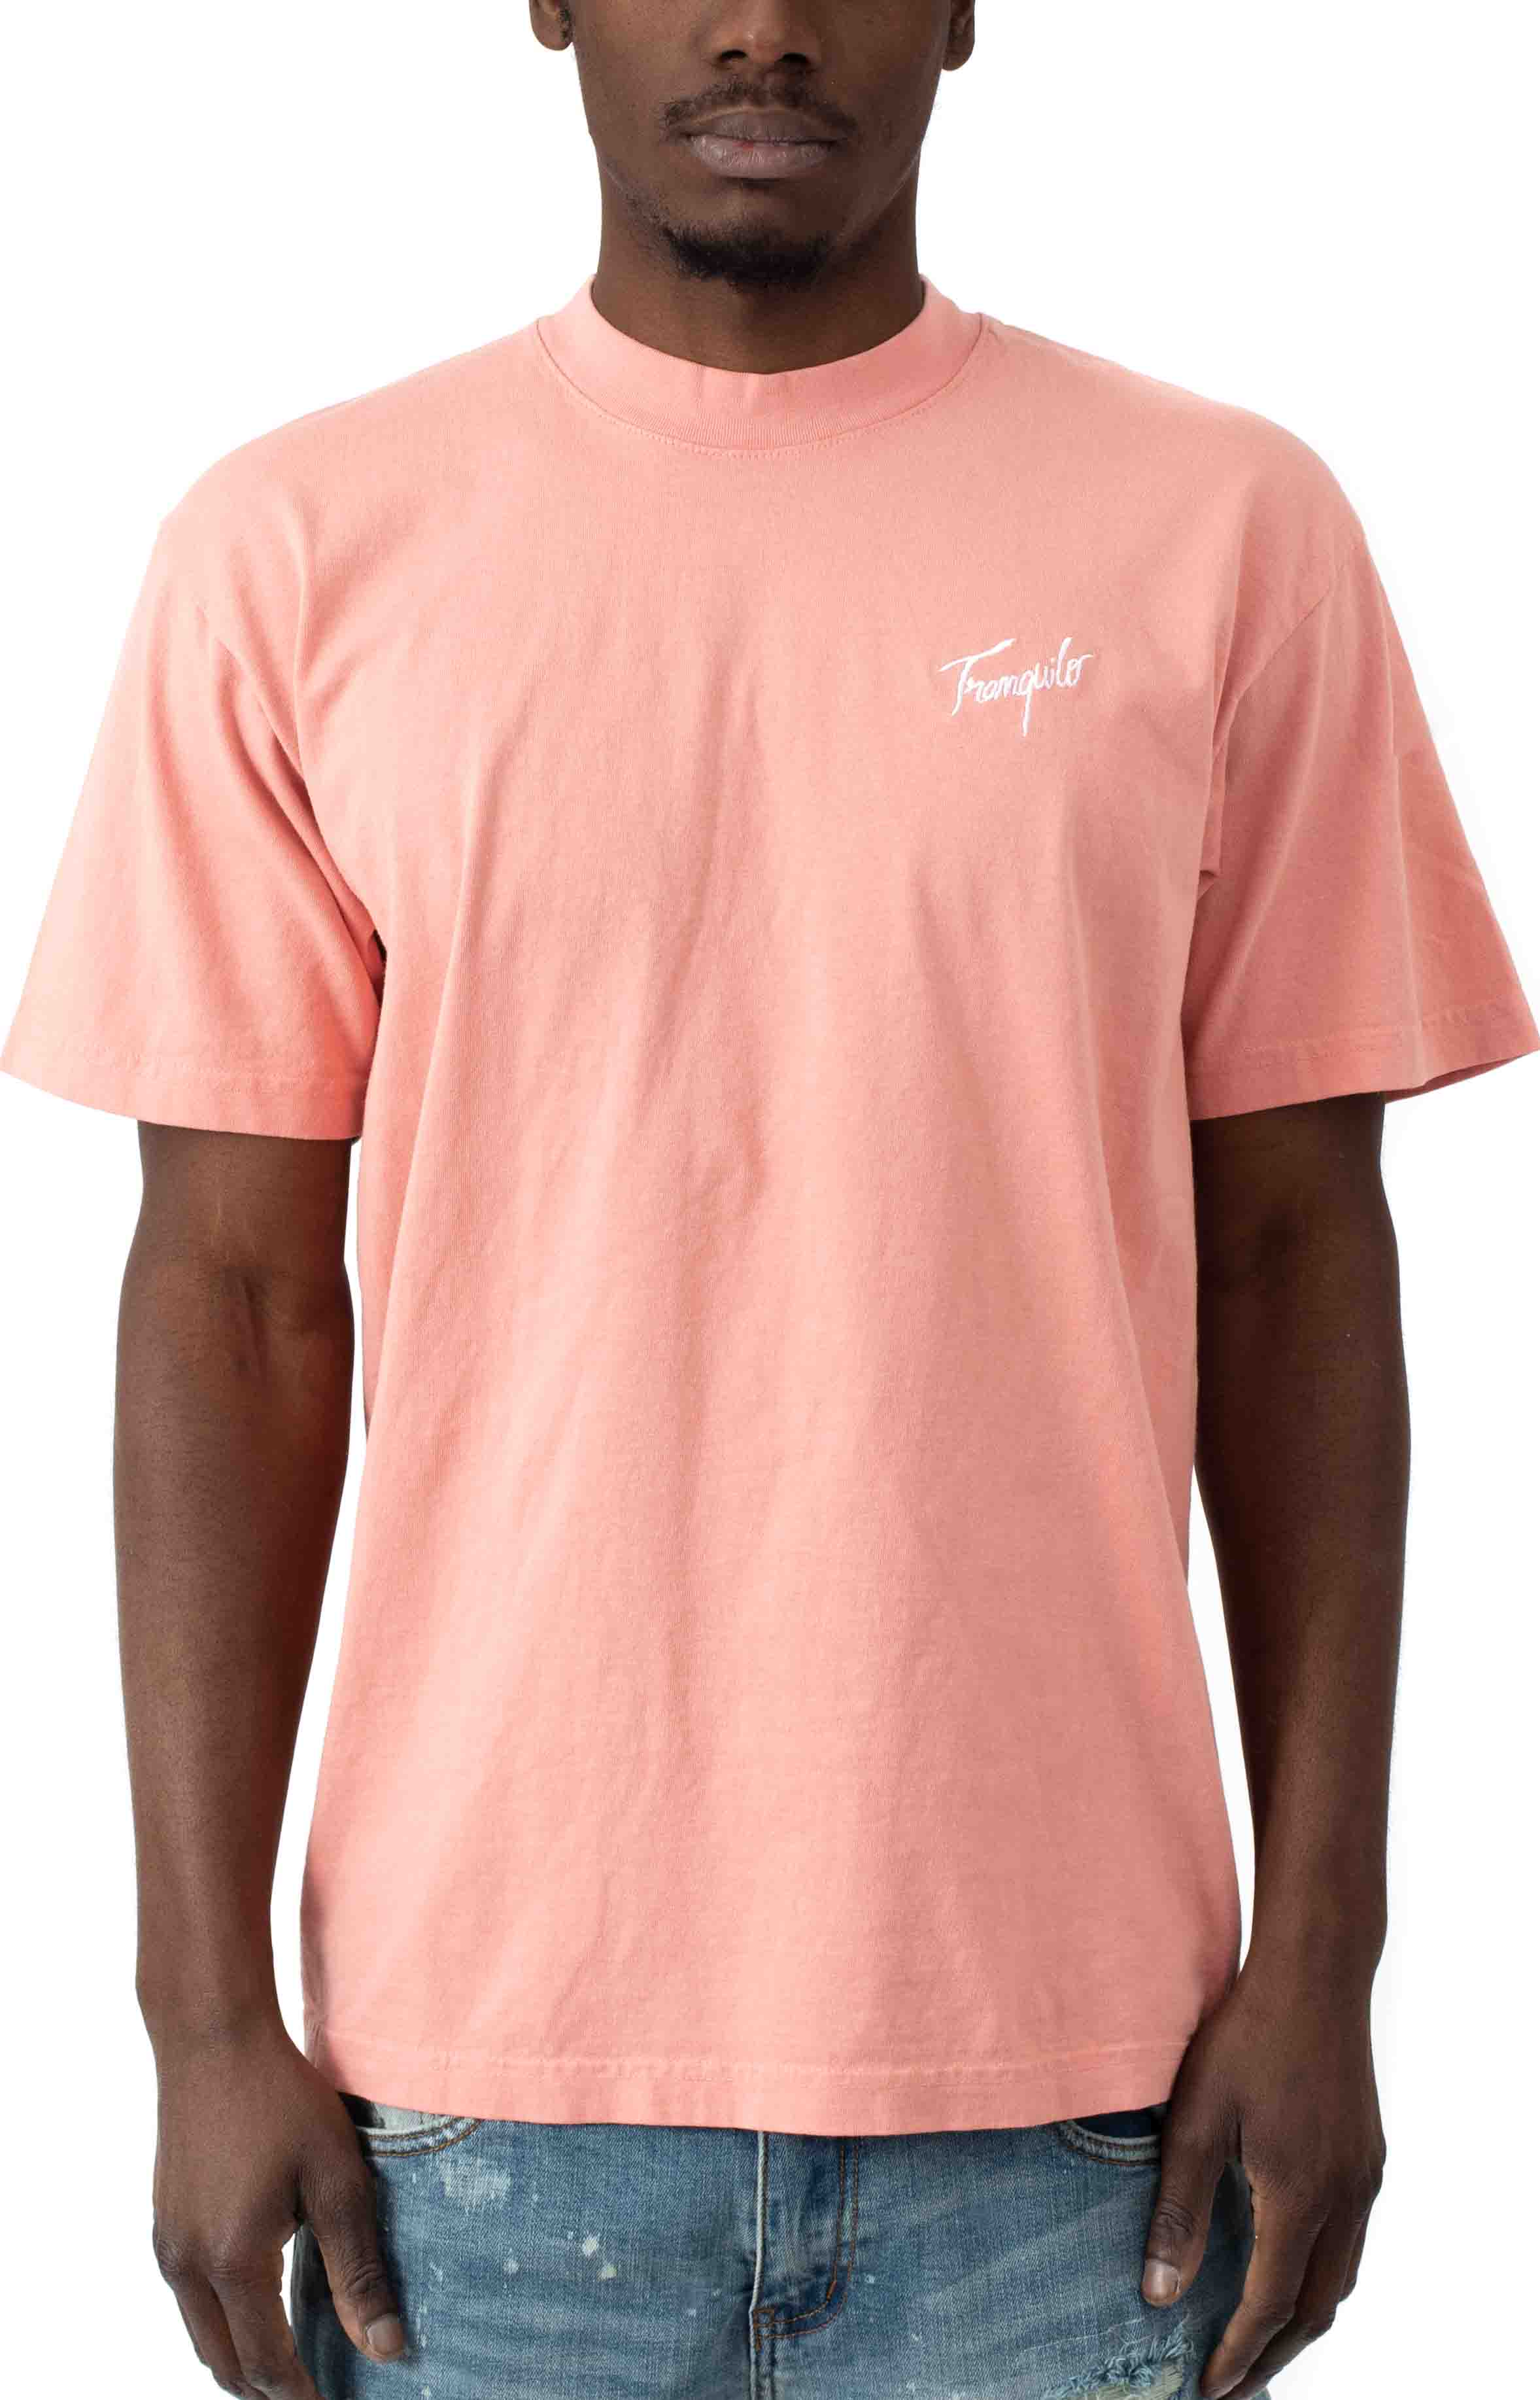 Tranquilo Embroidered T-Shirt - Peach